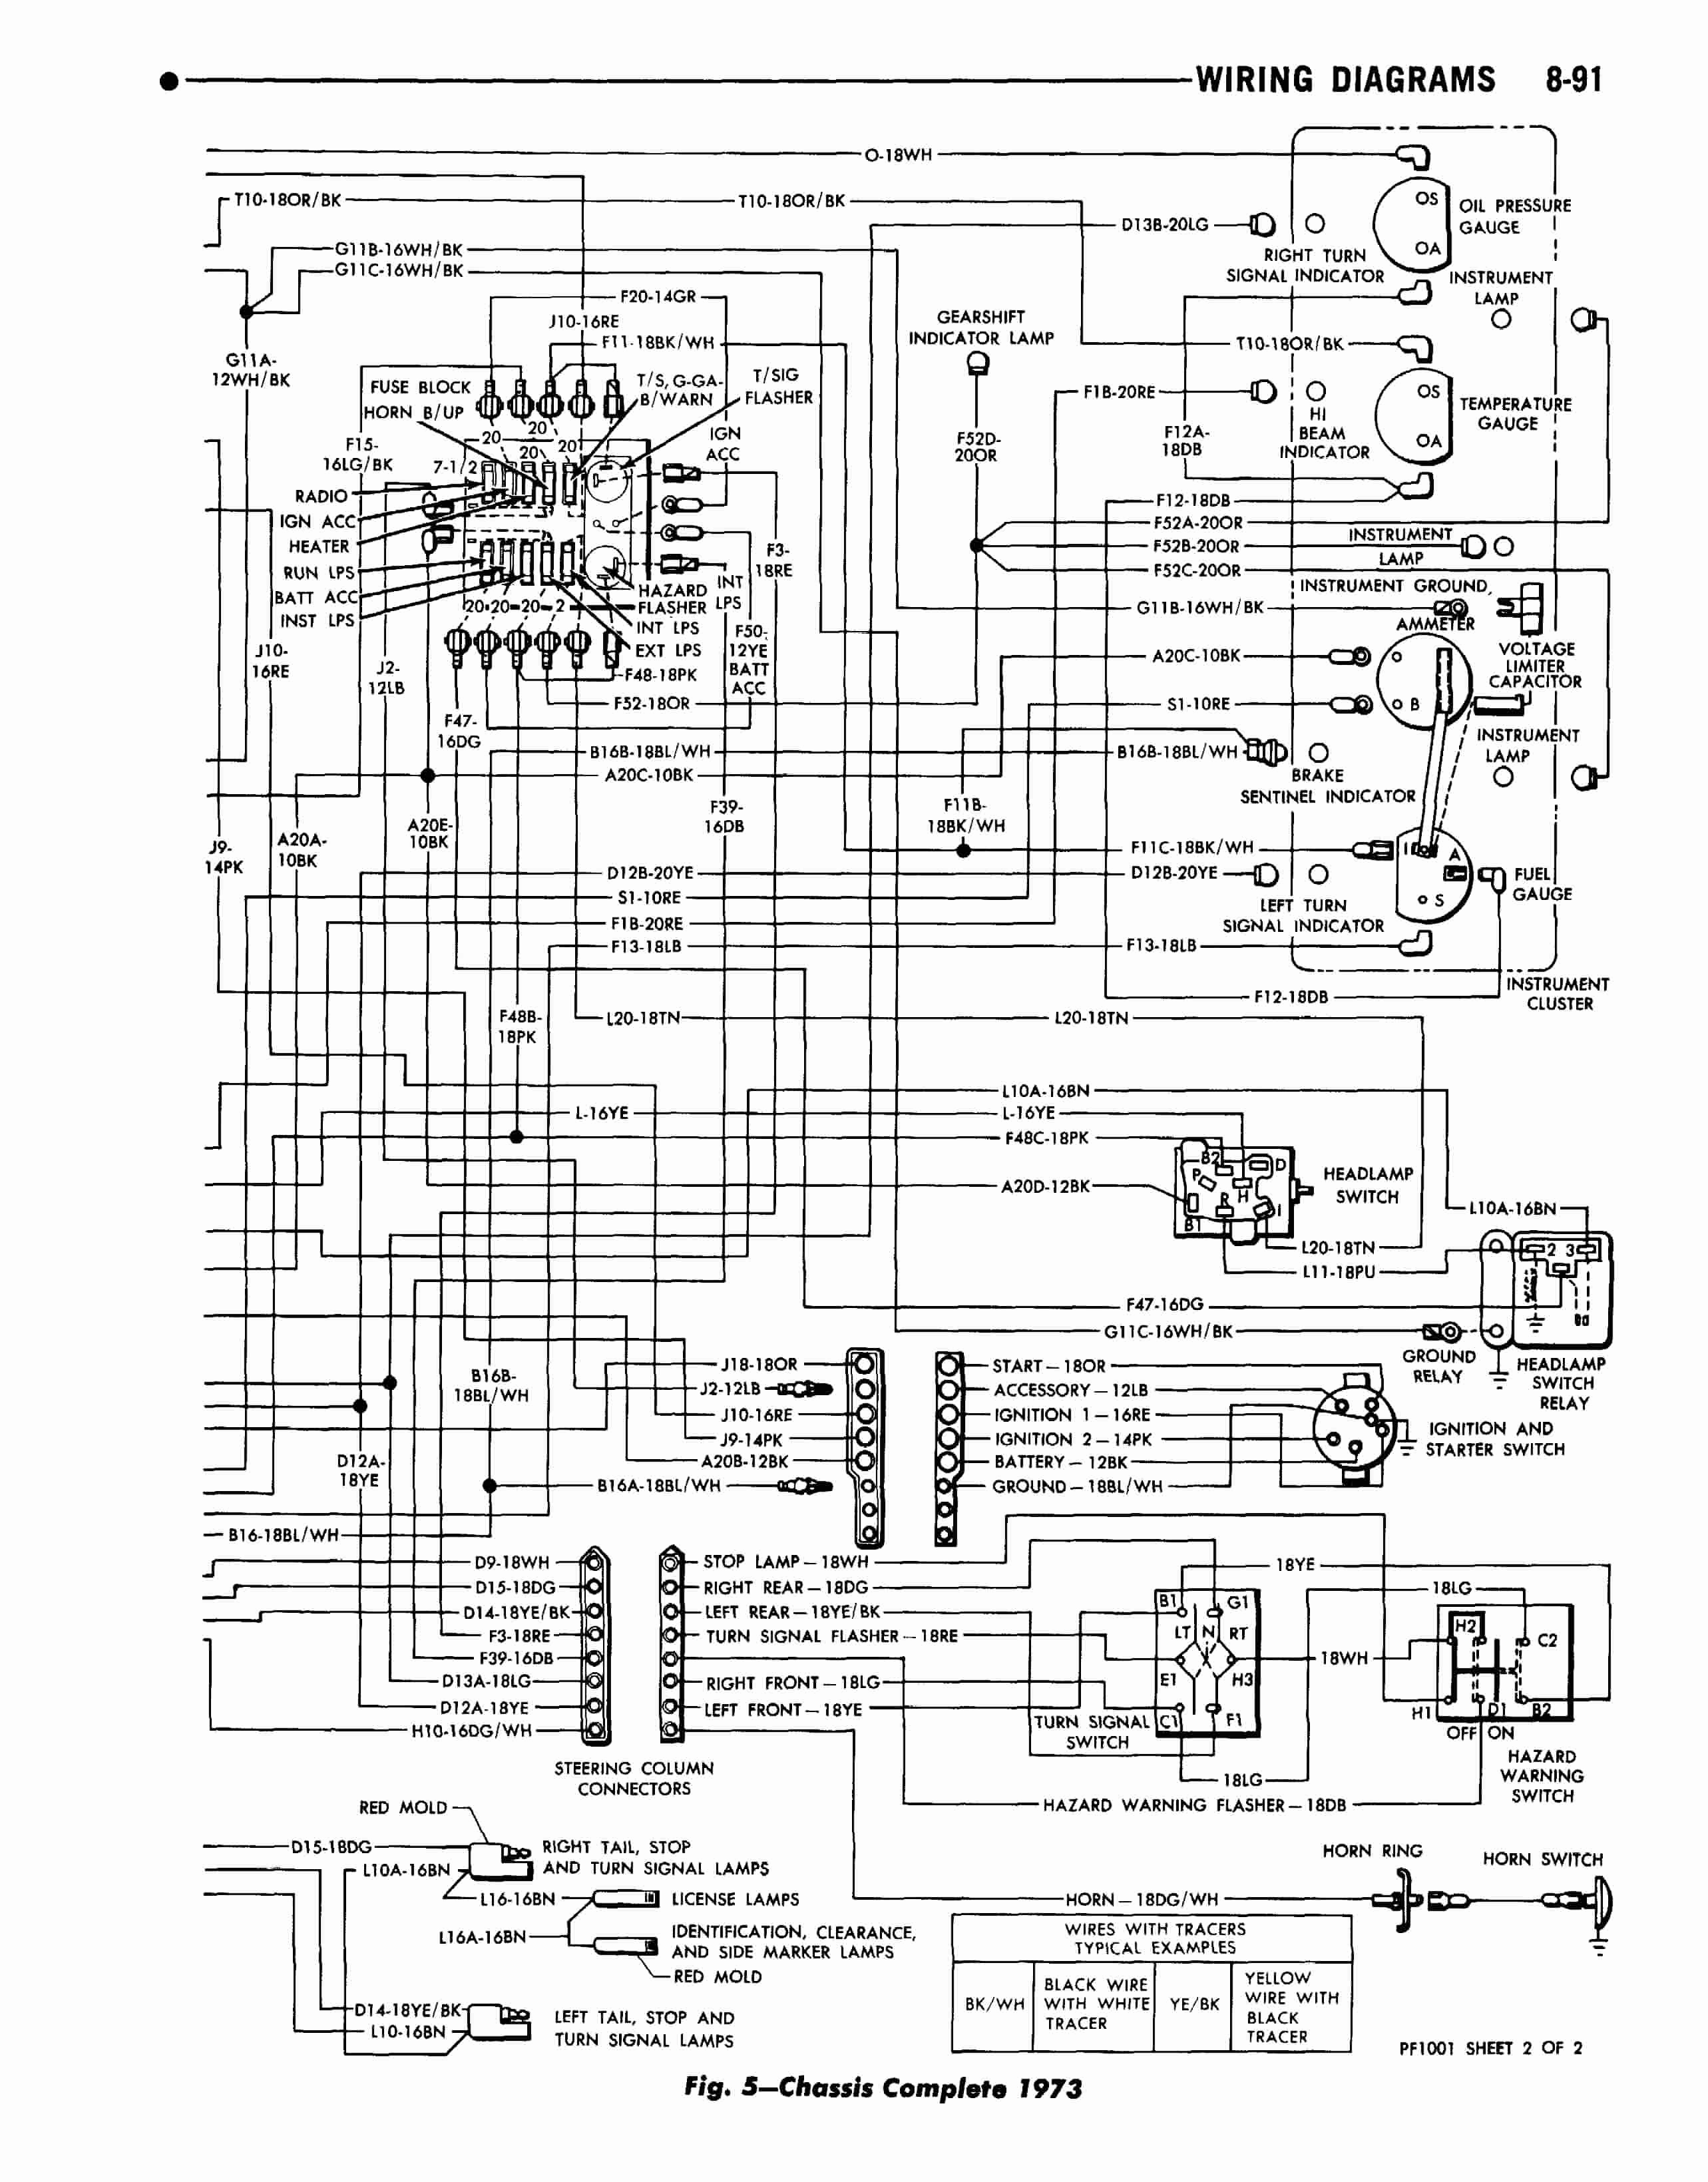 winnebago motorhome wiring diagram Collection-Winnebago Class A Floor Plans Lovely Winnebago Wiring Diagram Blurts 8-j